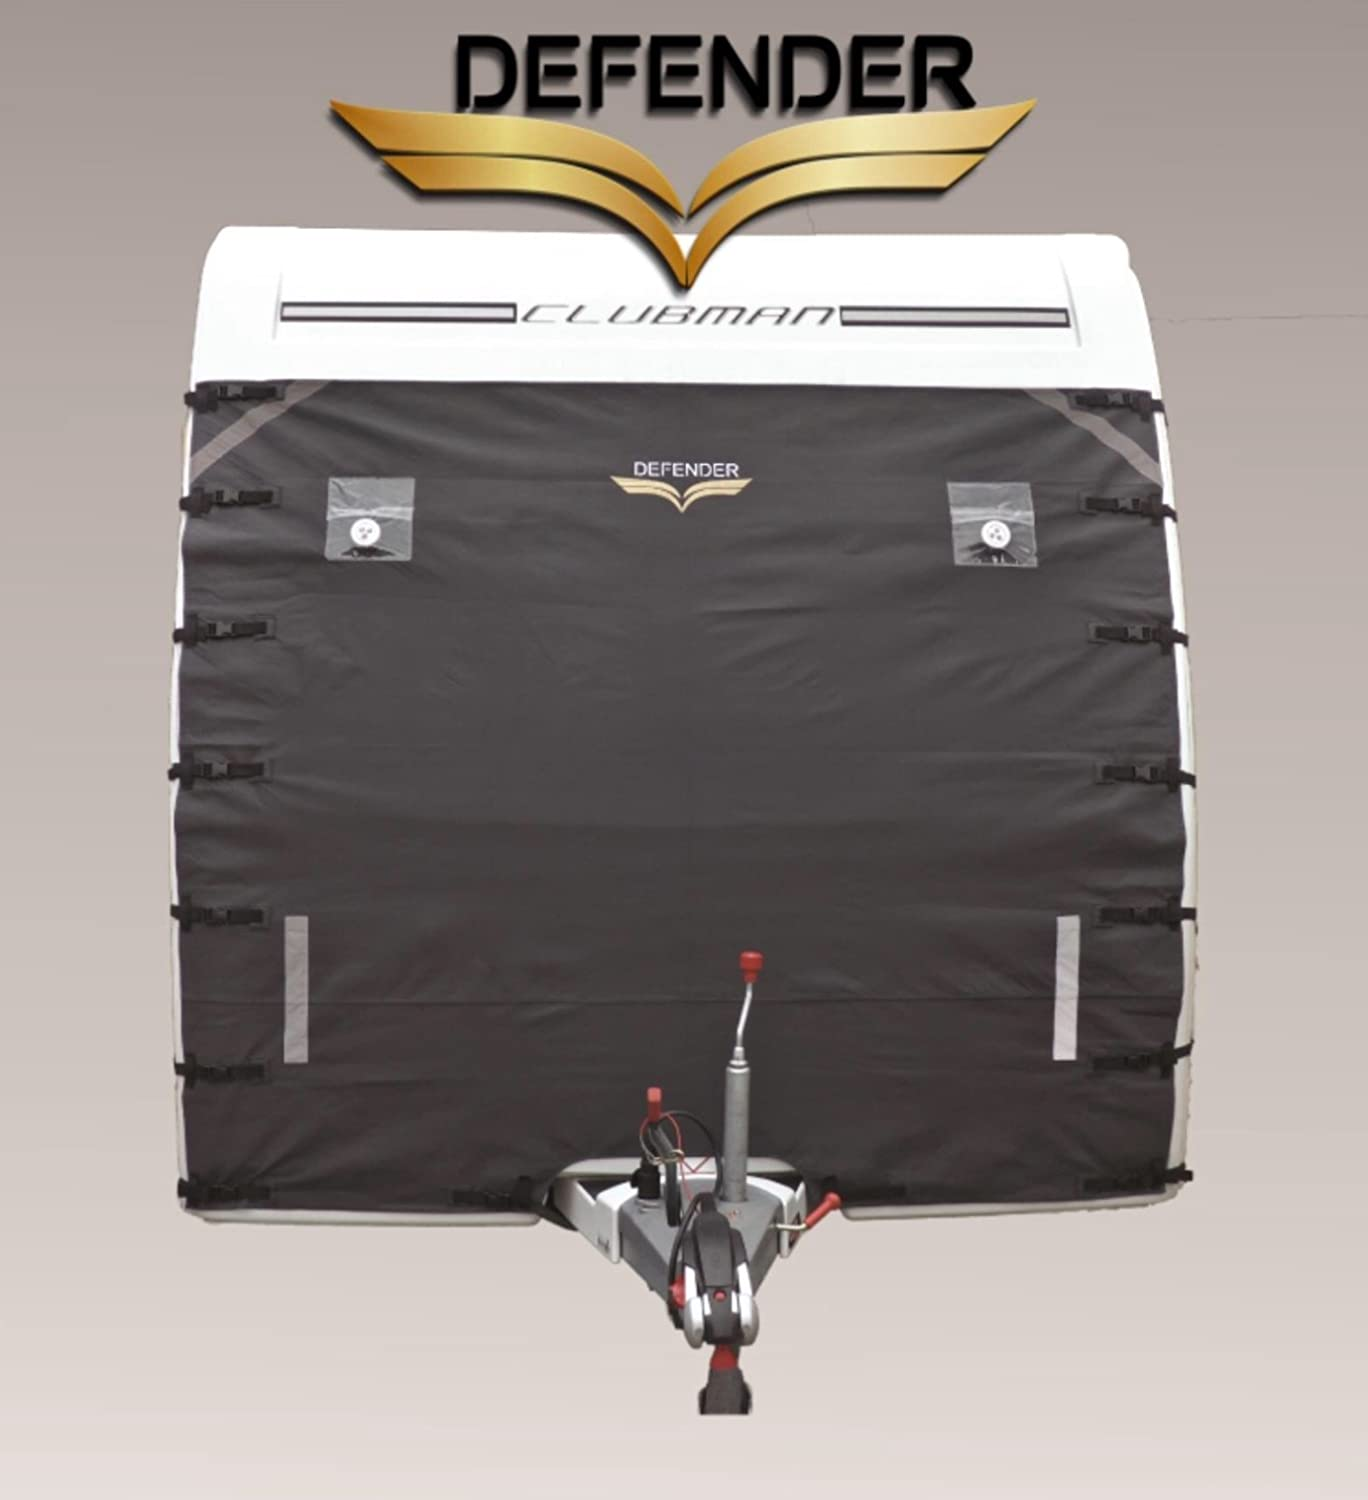 Defender Caravan Universal Front Towing Cover by Protector Covers Accessories | DARK GREY Jedset Products